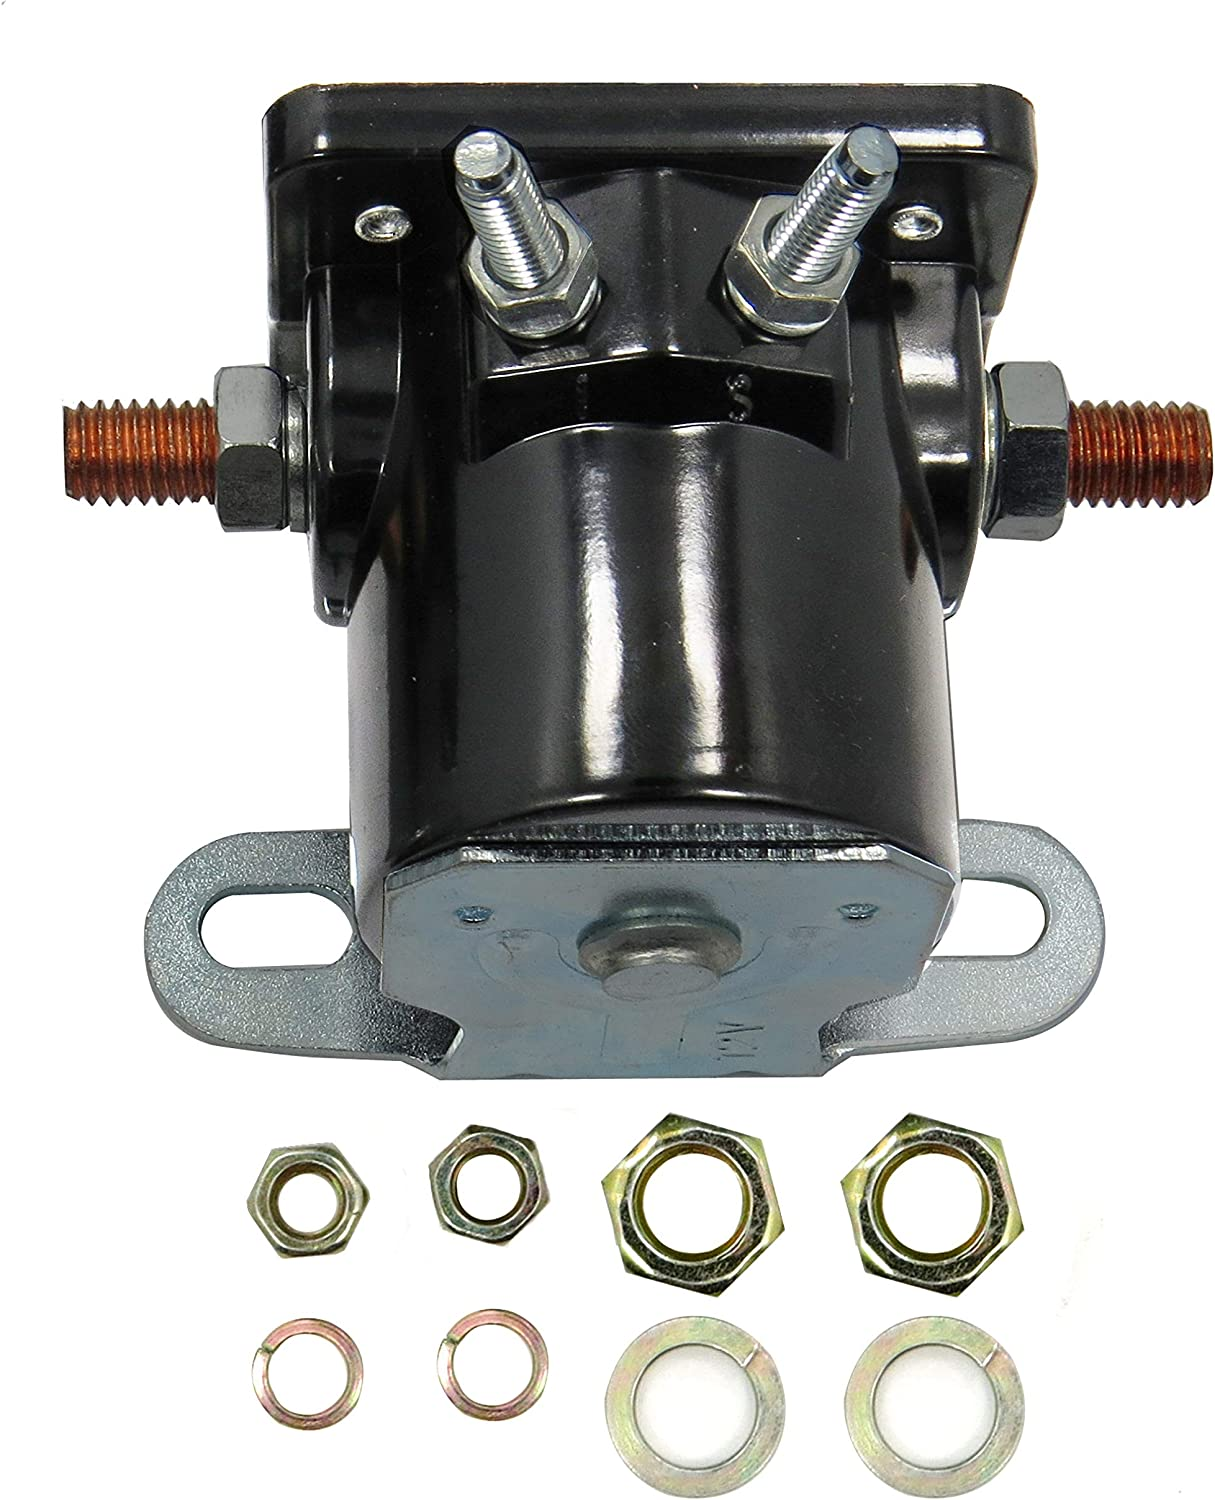 Aitook Starter Solenoid Relay Compatible with Mercury 40, 50, 65, 80, 85 HP Outboard Engines